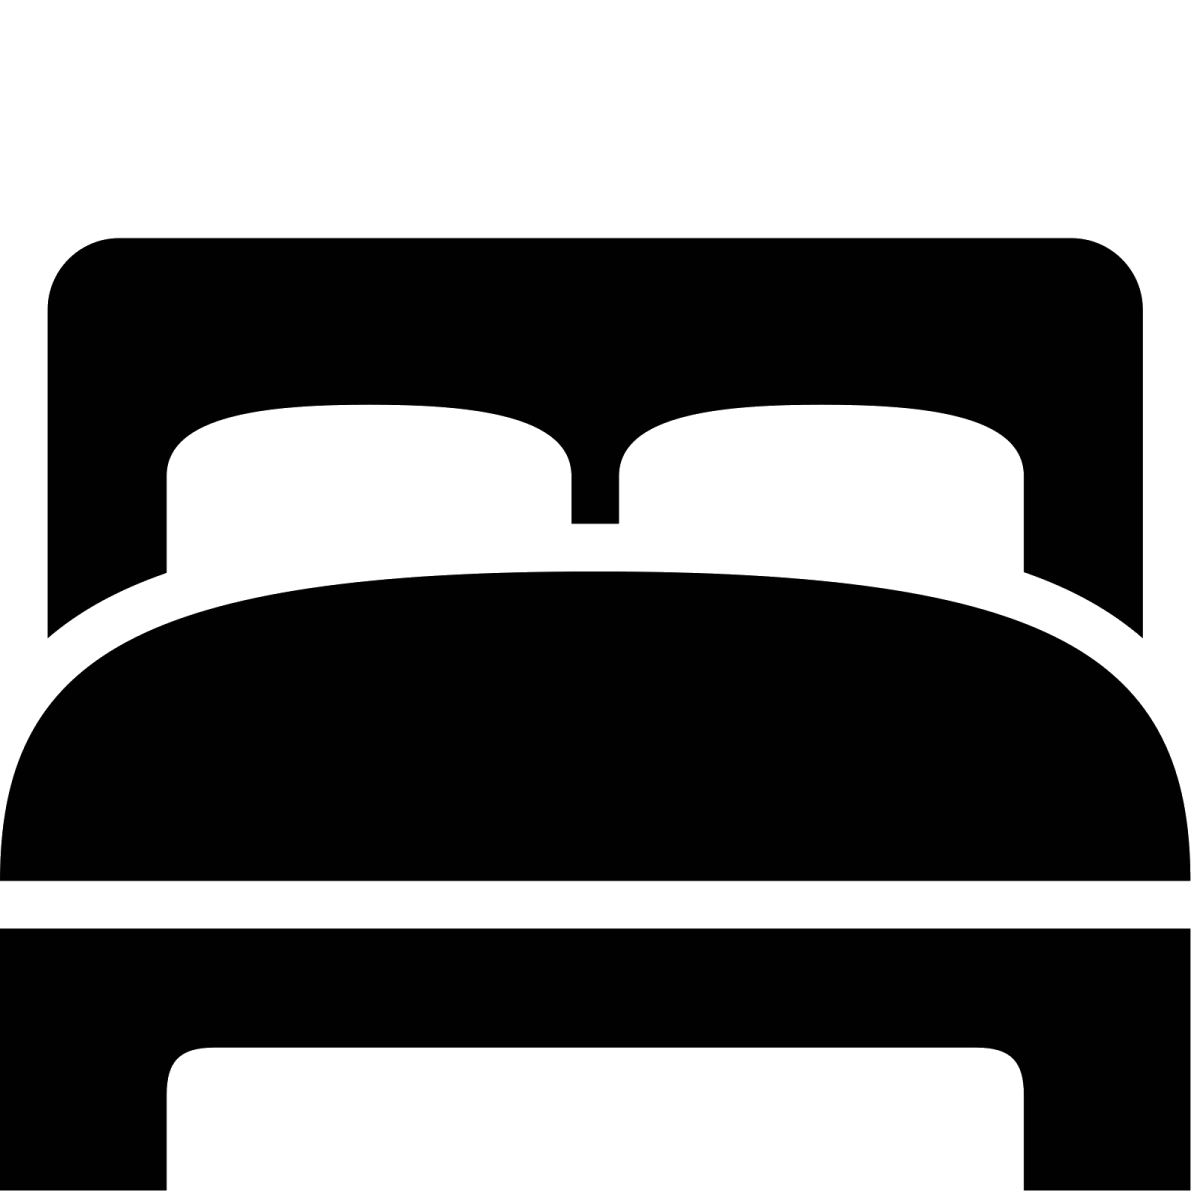 /files/images/anhkhachsan/bed-icon-png-299677-free-icons-library-bed-icon-png-1600_1600.jpg